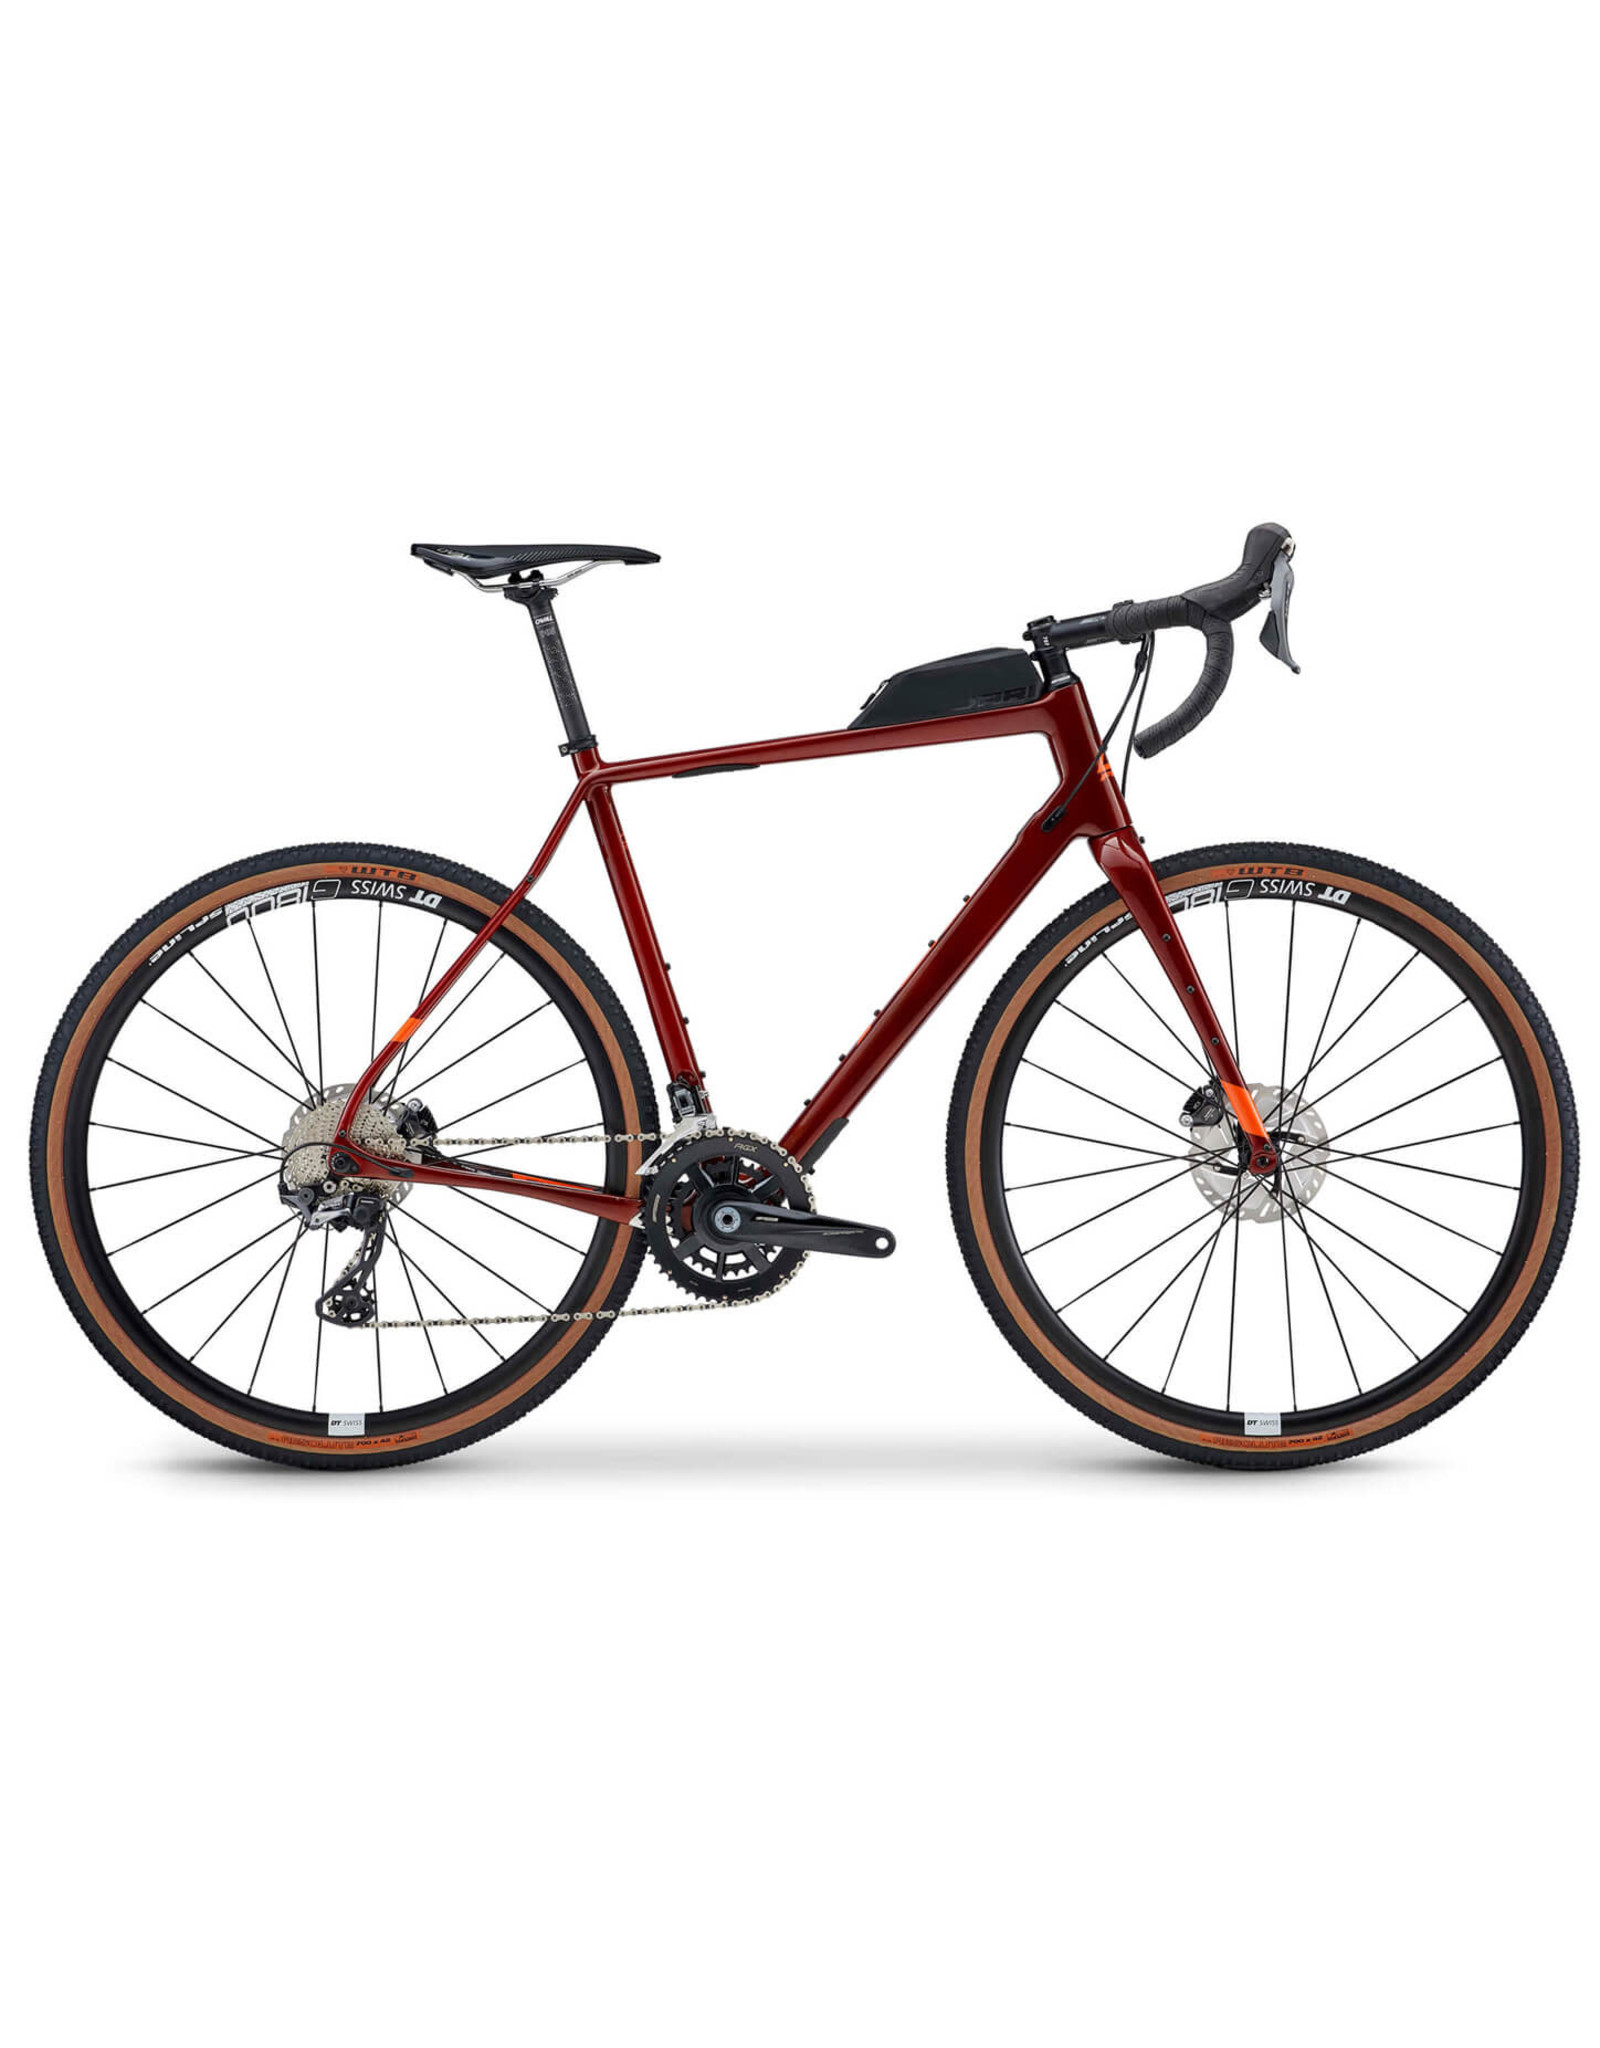 Fuji FUJI JARI CARBON 1.1 54 SANGRIA RED GRAVEL BIKE